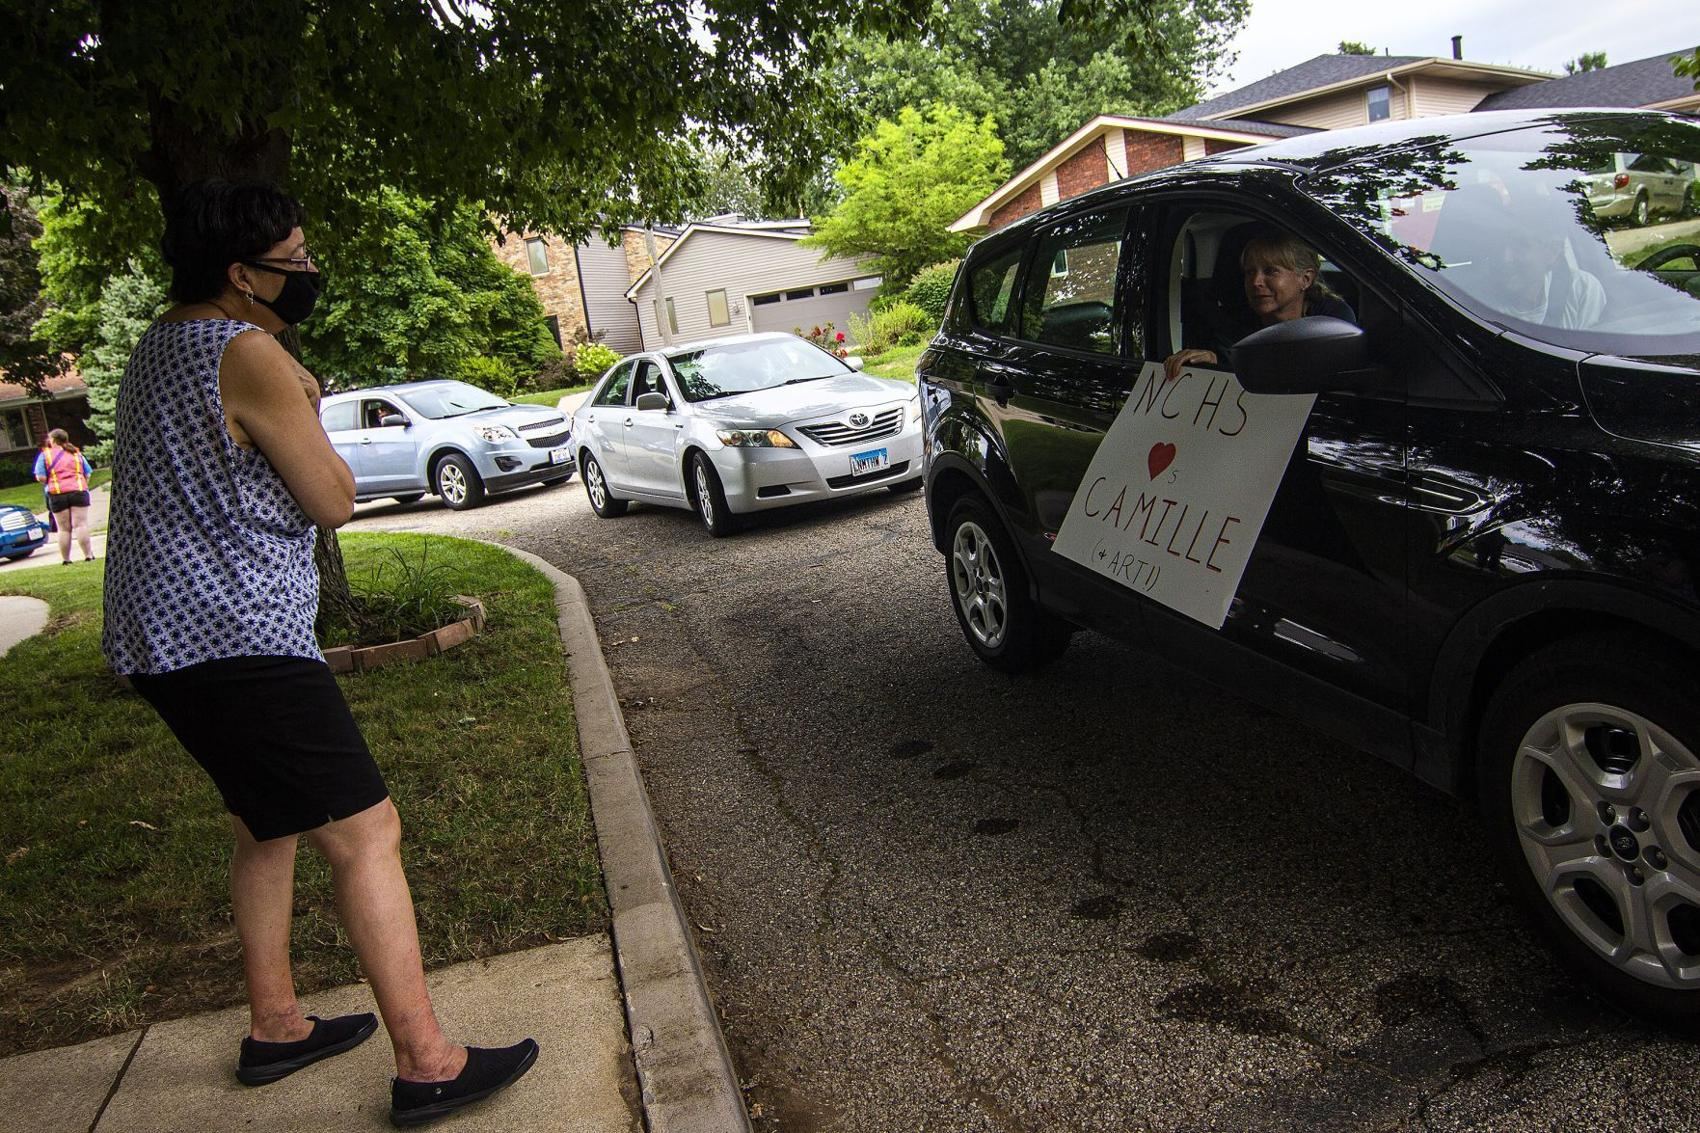 Camille Taylor greets a passerby during a drive-by parade for her and her husband, Art, on July 31 outside their home in Bloomington. (Credit: Lewis Marien, The Pantagraph)